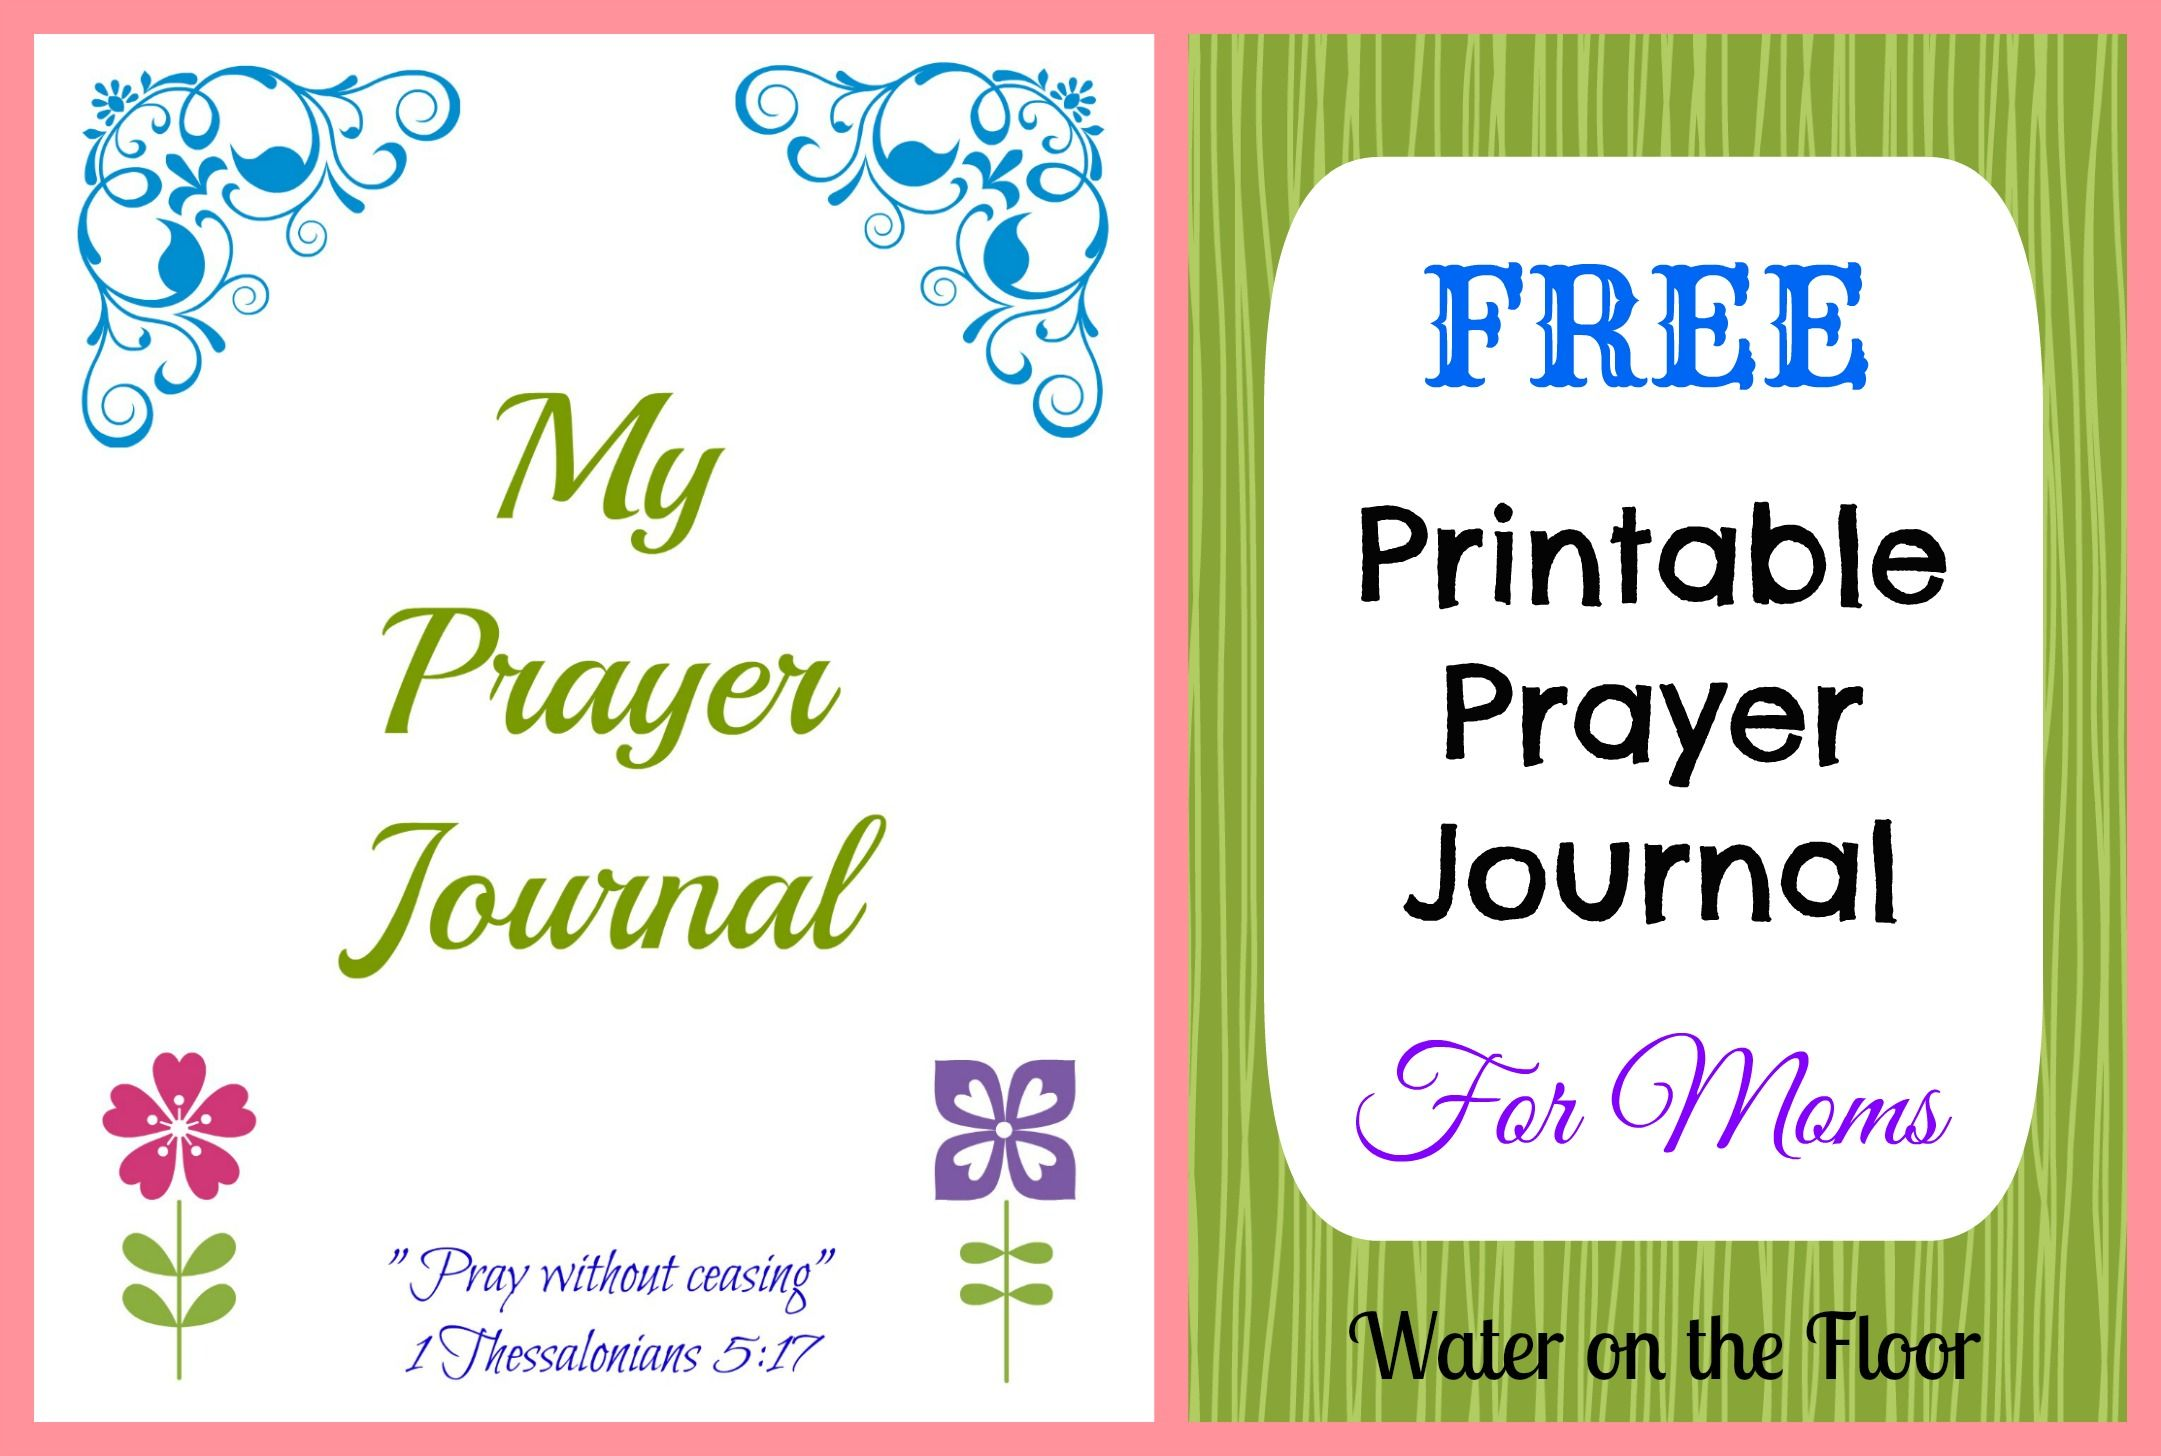 photo relating to Free Printable Prayer Journal known as No cost Printable Prayer Magazine for Mothers For a much better me